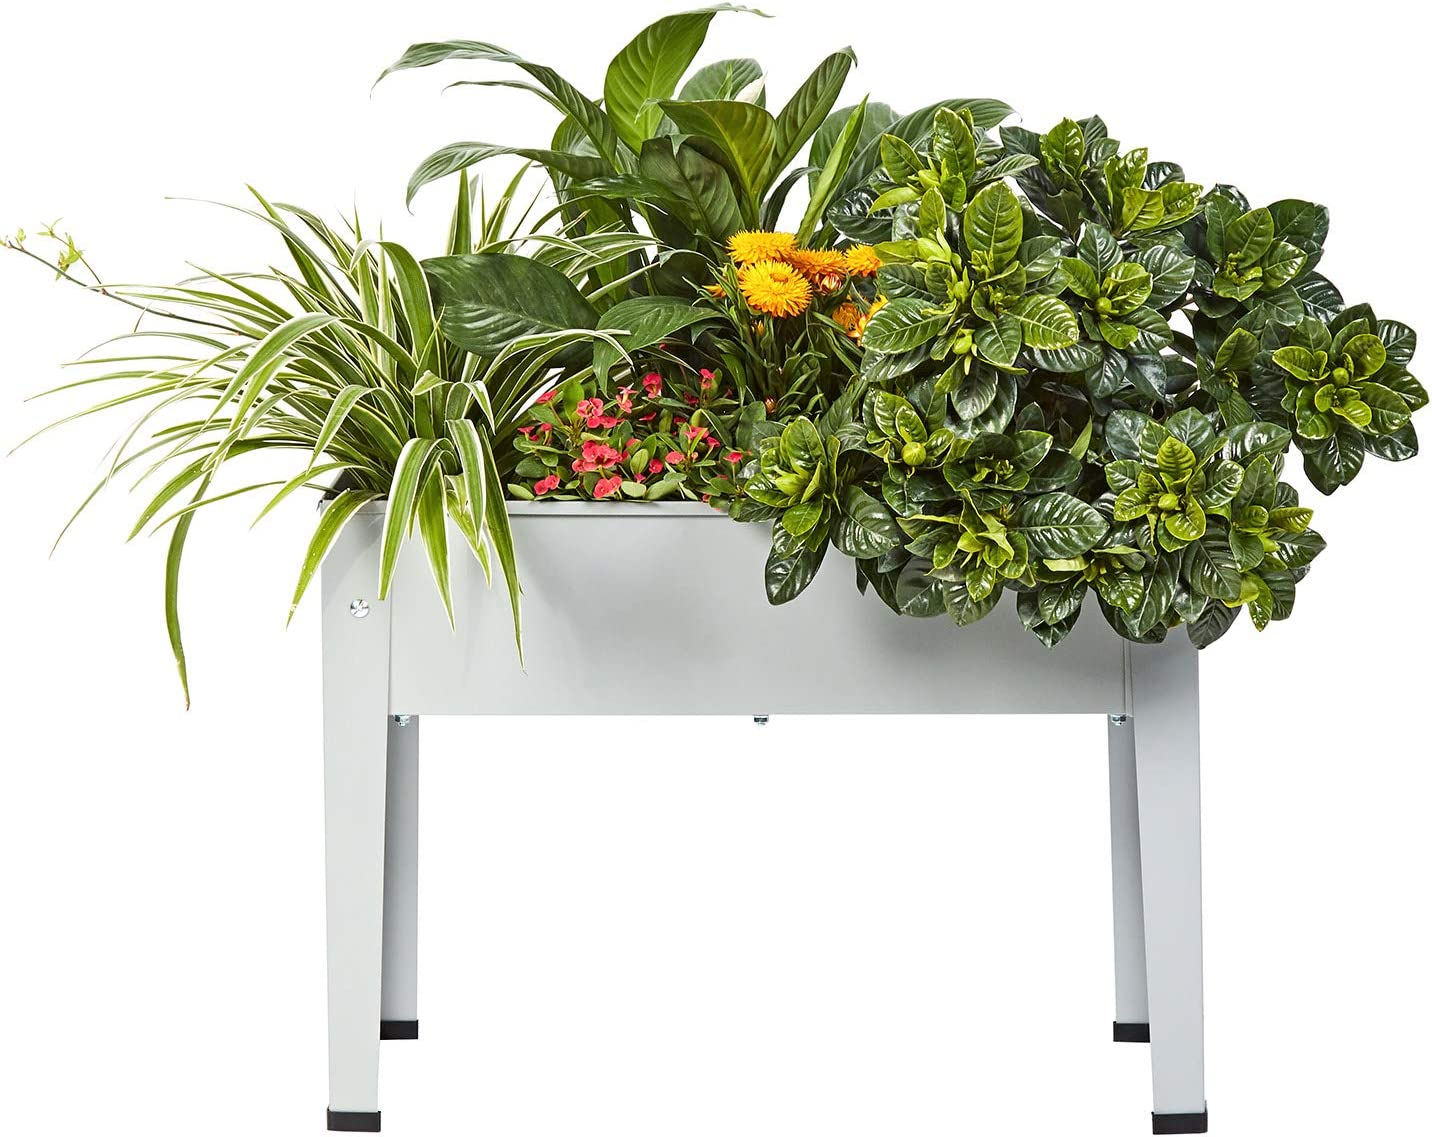 Raised Metal Garden Planter Bed,Garden Planter Box,Planting Container with Legs Suitable for Outdoor Patio Planting Herbs and Vegetables (Small)